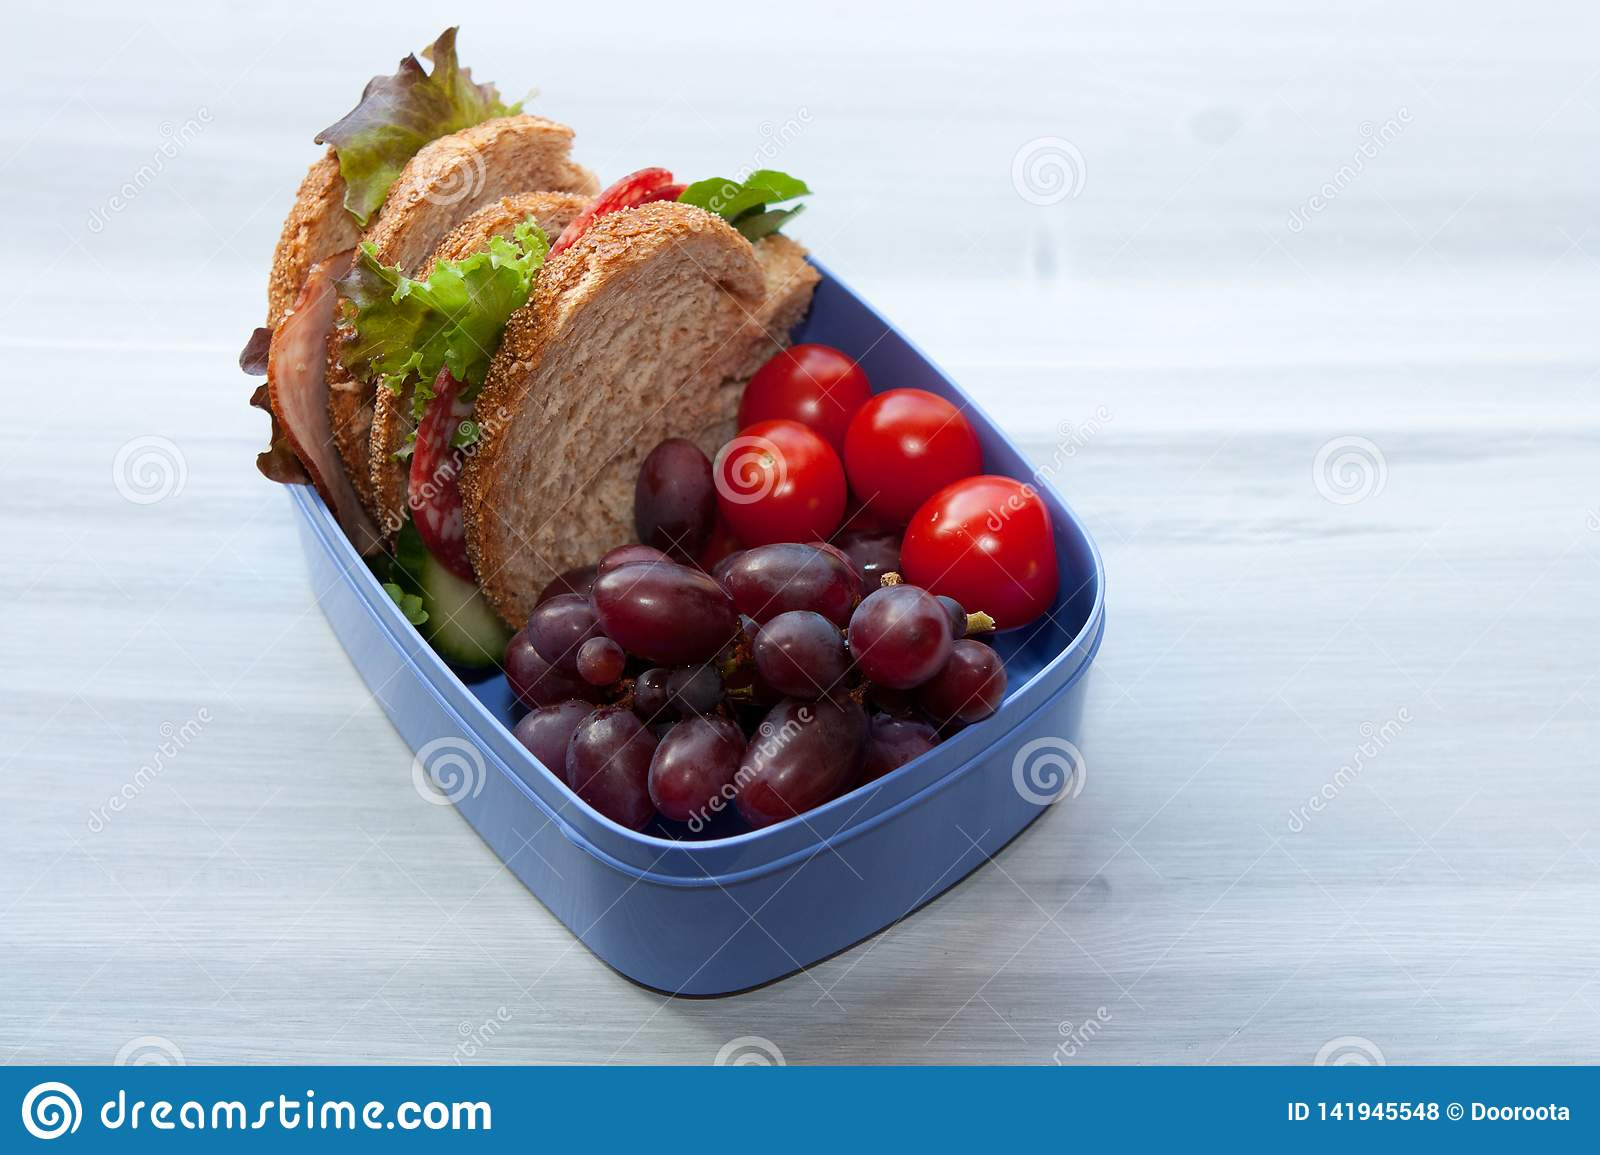 Lunchbox with sandwich, vegetables and fruits.